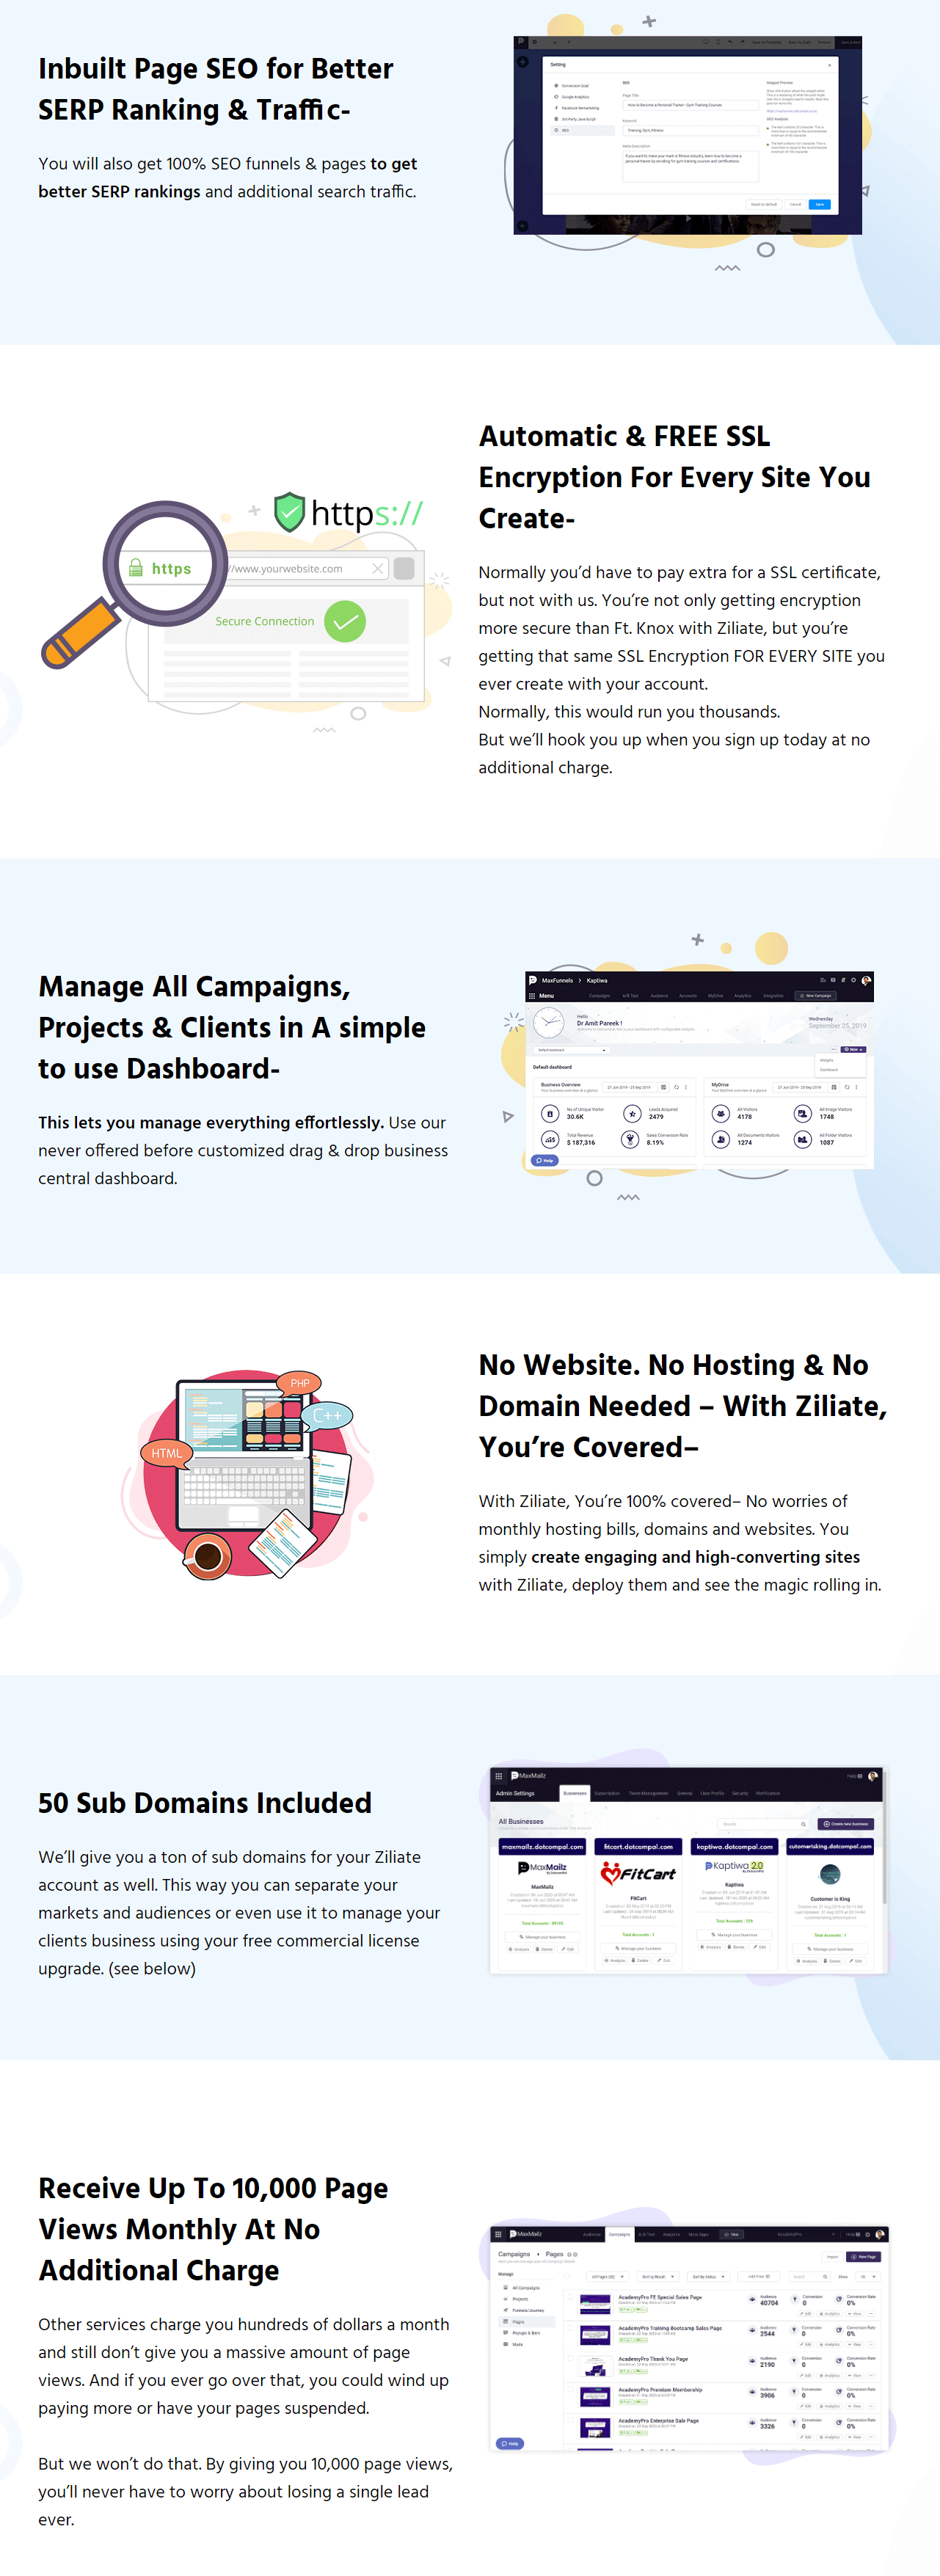 Ziliate-Feature-3-engage-more